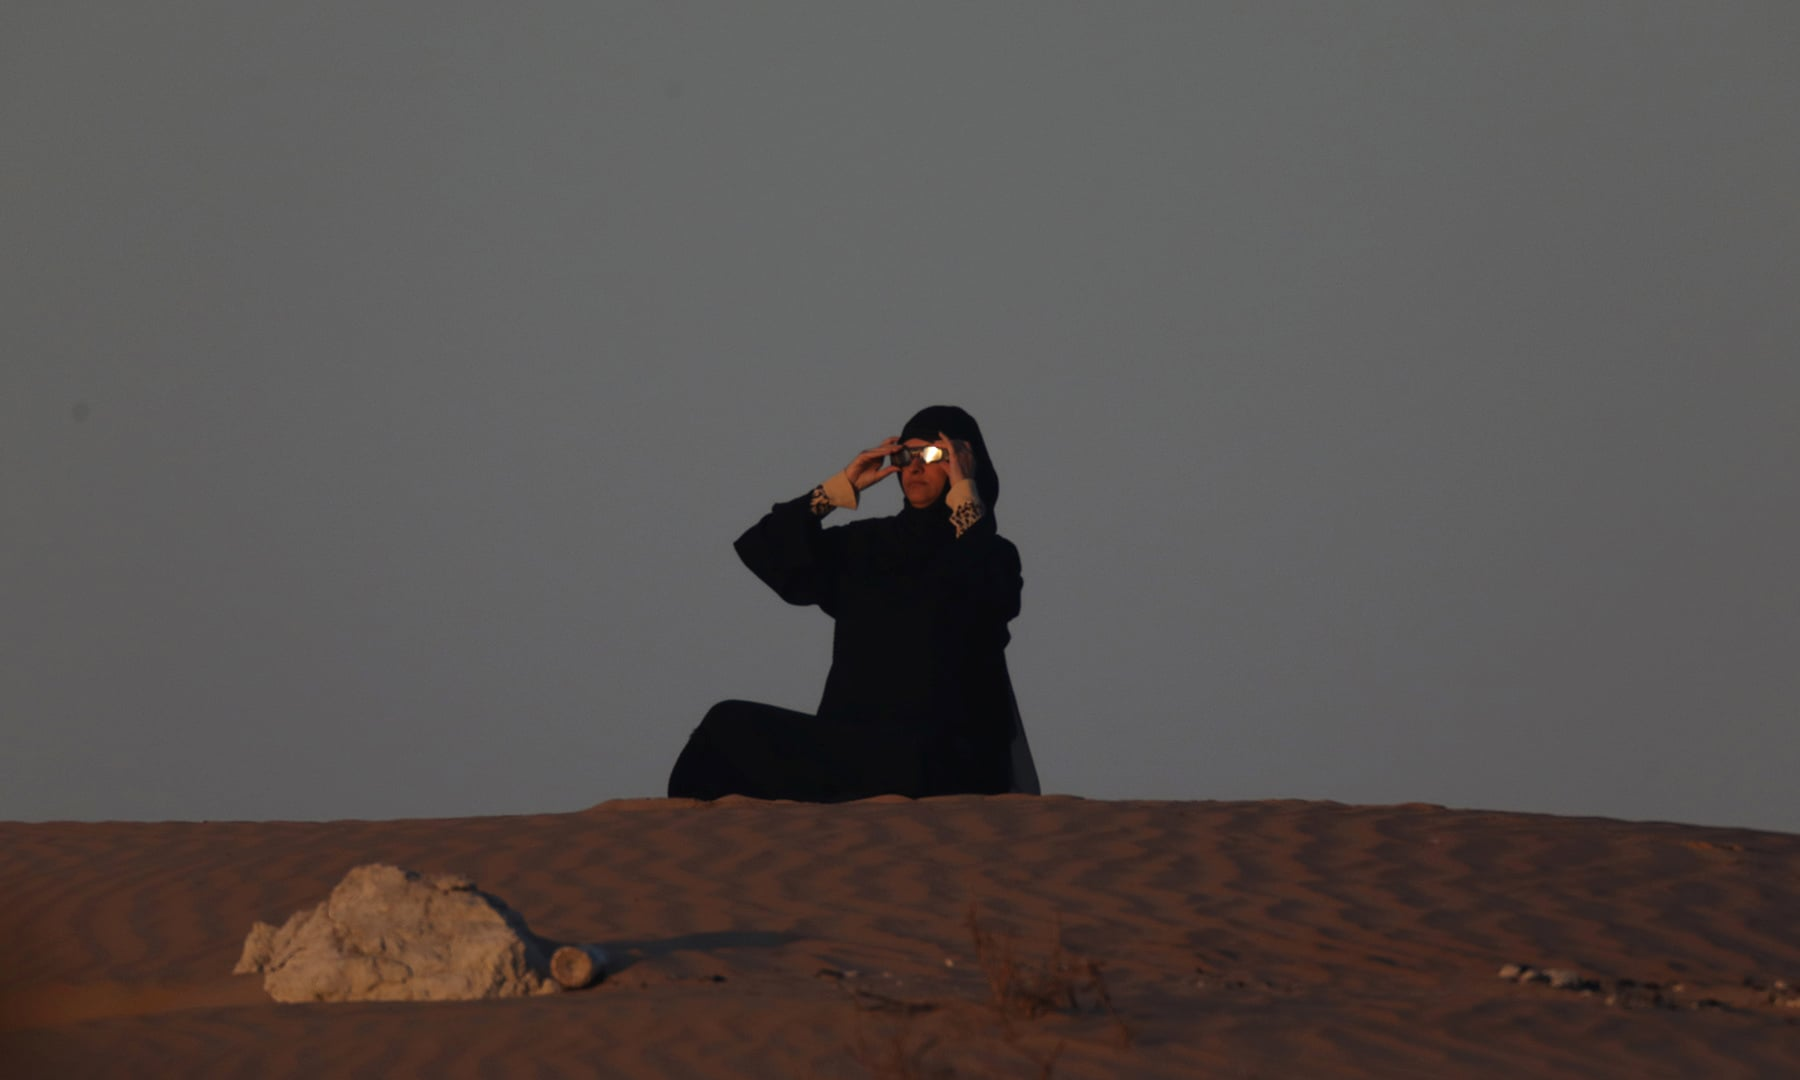 An Emirati woman views an annular solar eclipse in Madinat Zayed in the Al Dhafra region of Abu Dhabi, United Arab Emirates on December 26. — Reuters